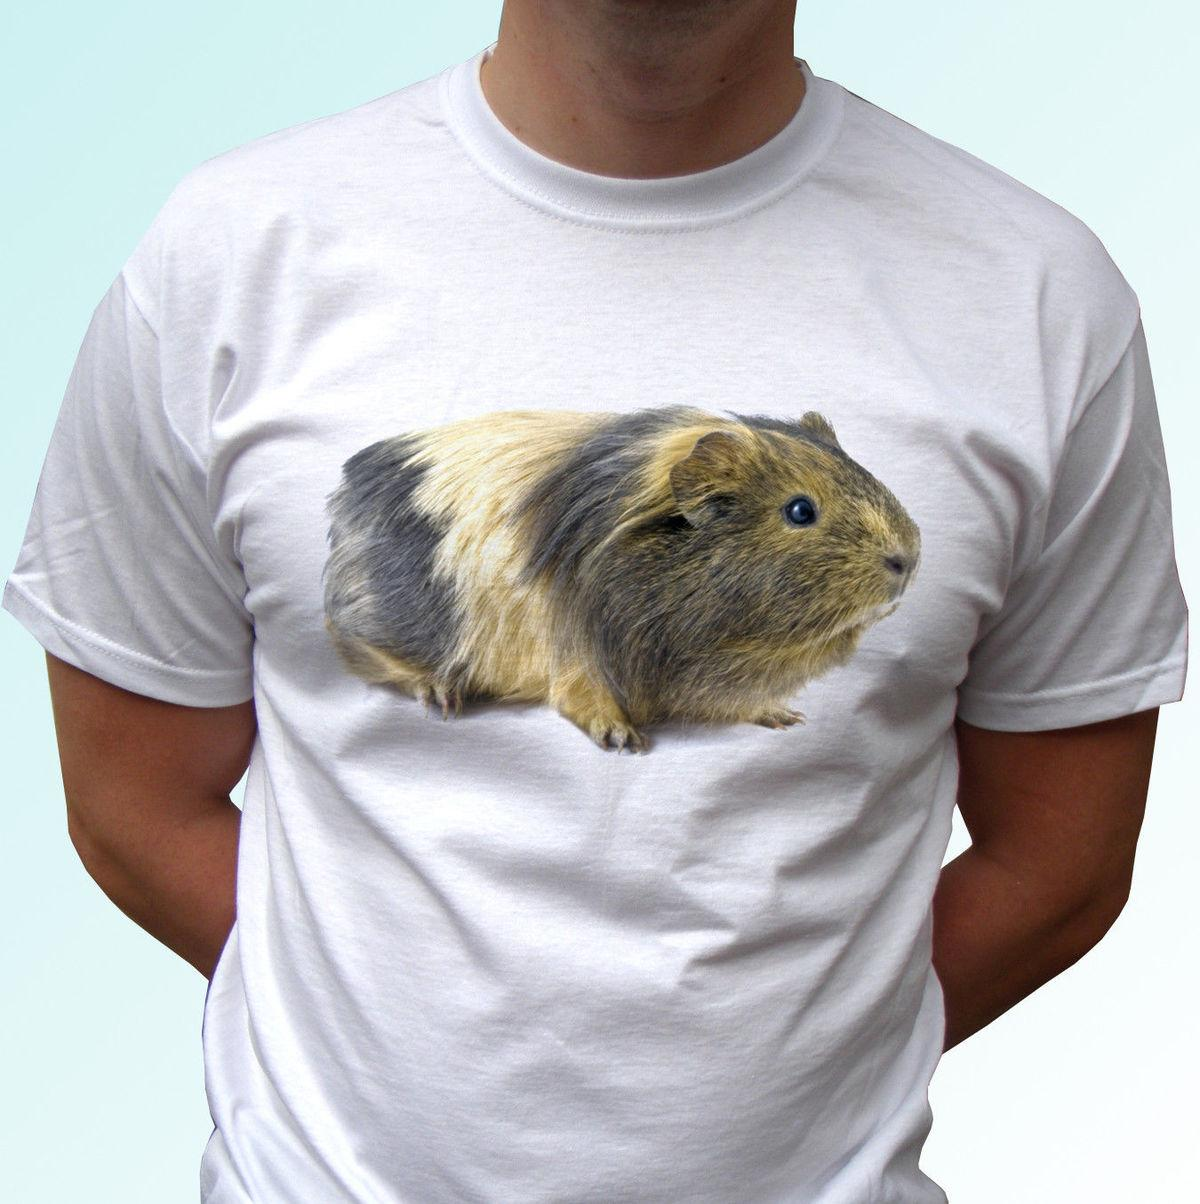 5430d73ca Guinea Pig White T Shirt Animal Tee Top Design Women/Mens Kids Baby Sizes  Great Quality Funny Man Cotton Print T Shirt Slogan T Shirts From  Carenthusiast, ...